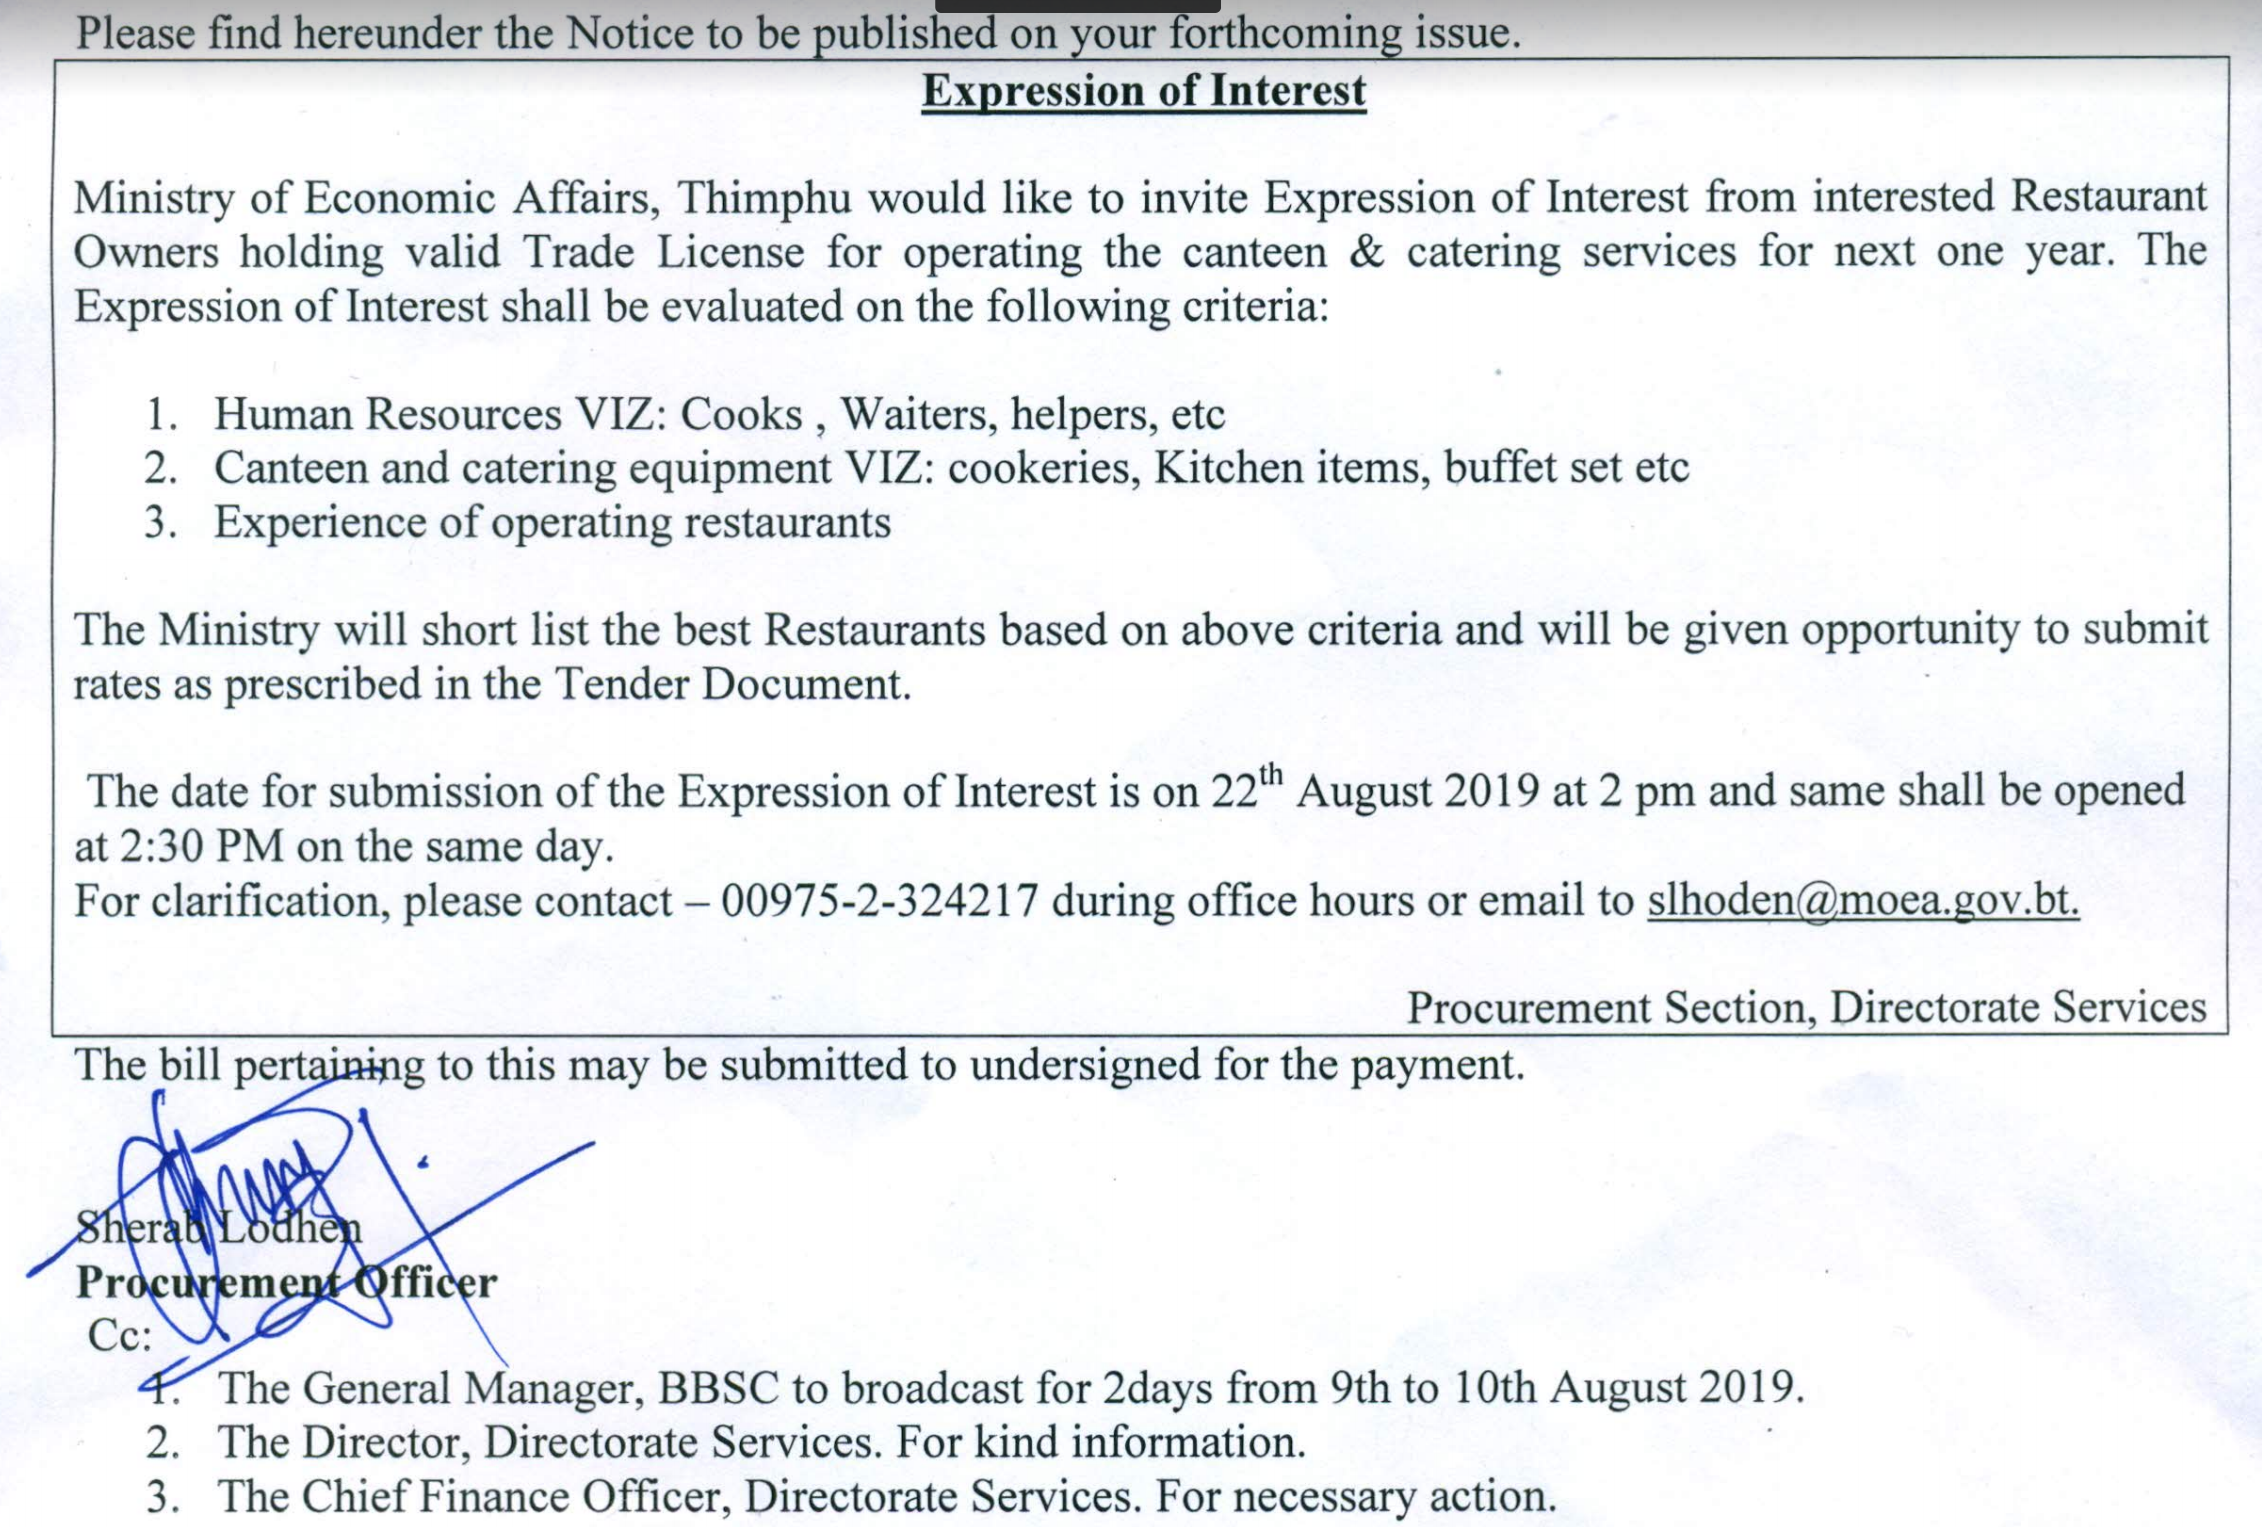 Expression of interest for canteen & catering service